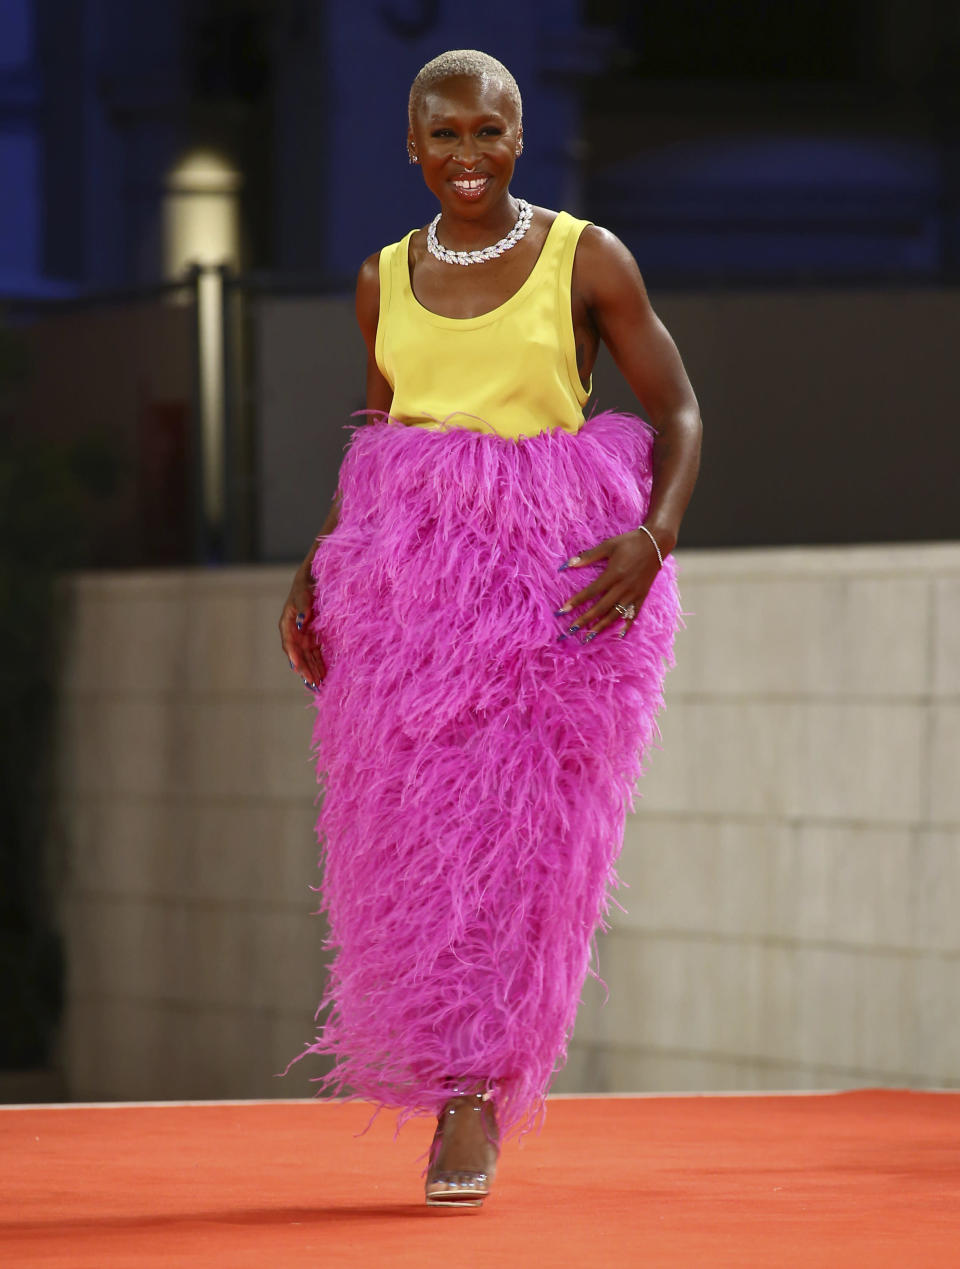 FILE - In this Sept, 3, 2021 file photo Cynthia Erivo poses for photographers upon arrival at the premiere of the film 'Last Night in Soho' during the 78th edition of the Venice Film Festival in Venice, Italy. (Photo by Joel C Ryan/Invision/AP, File)